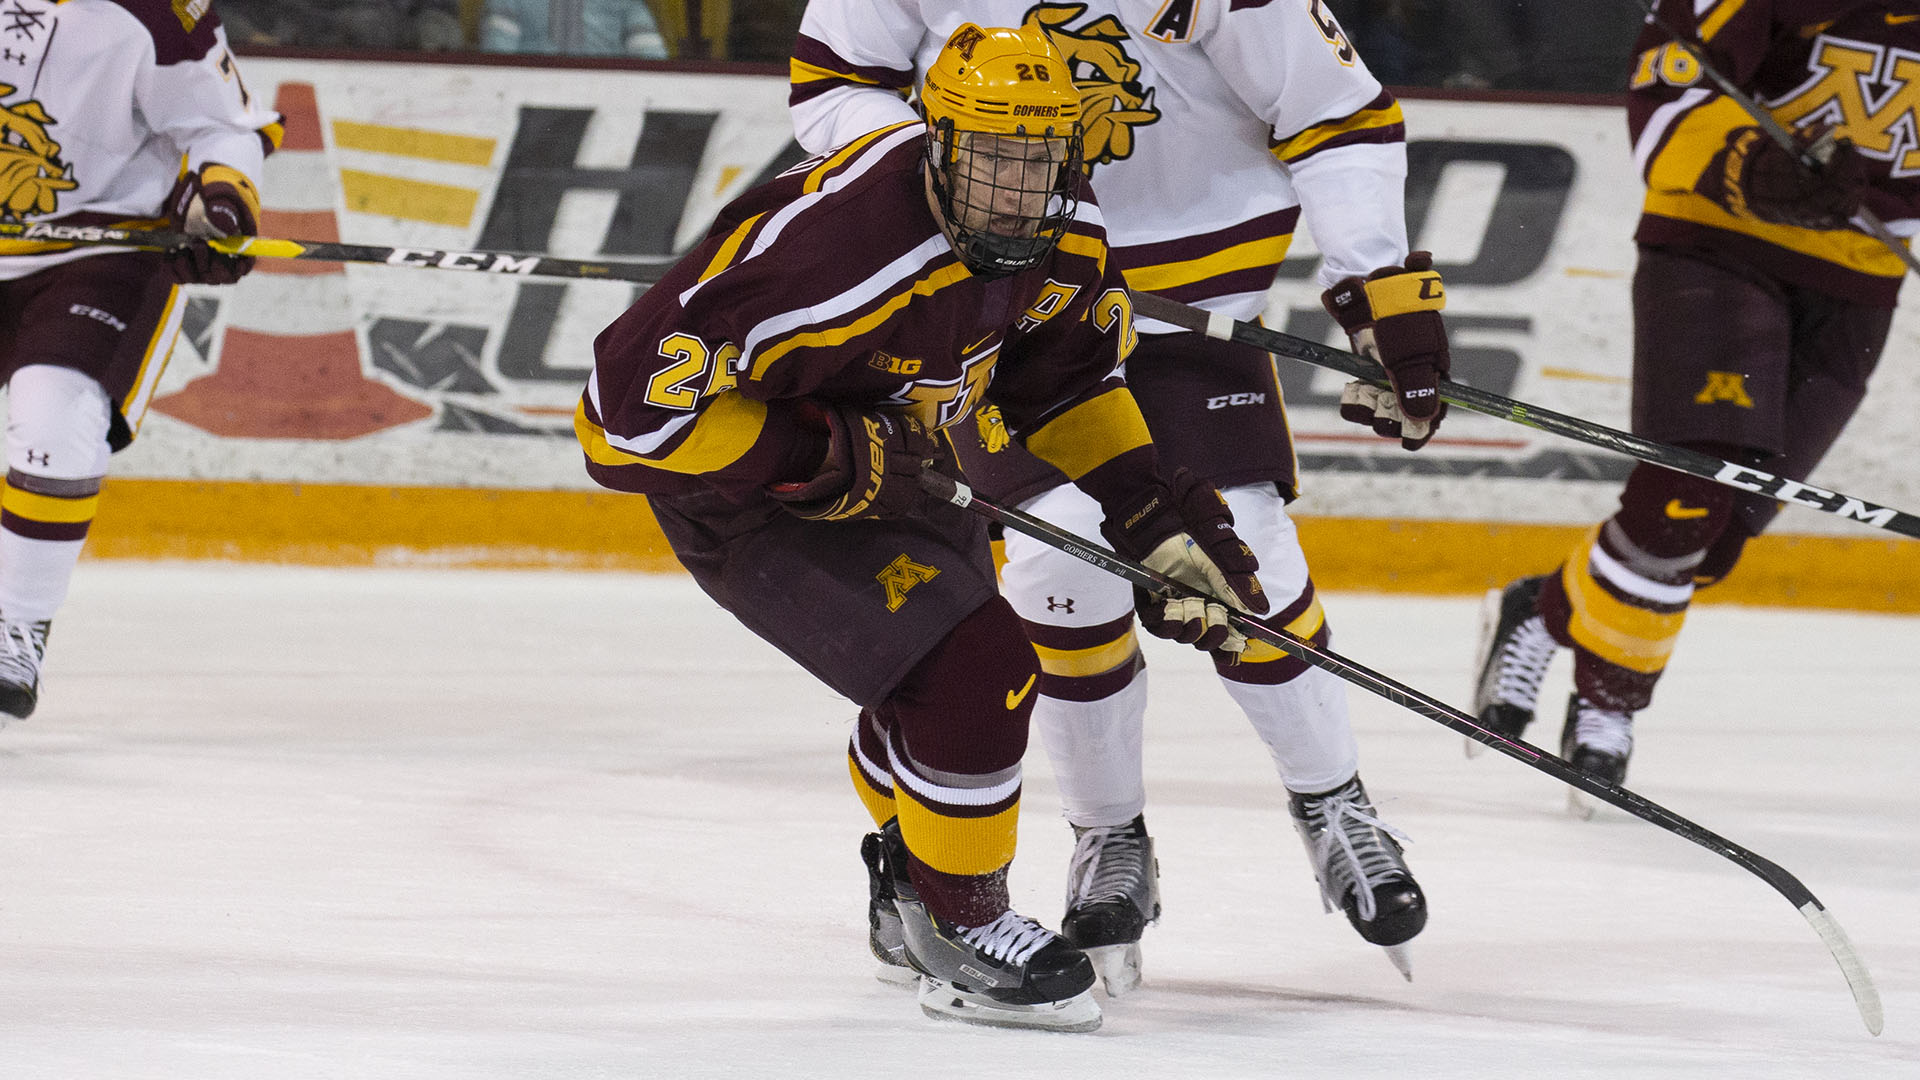 University Of Minnesota Takes On Minnesota State In Home-and-Home Series